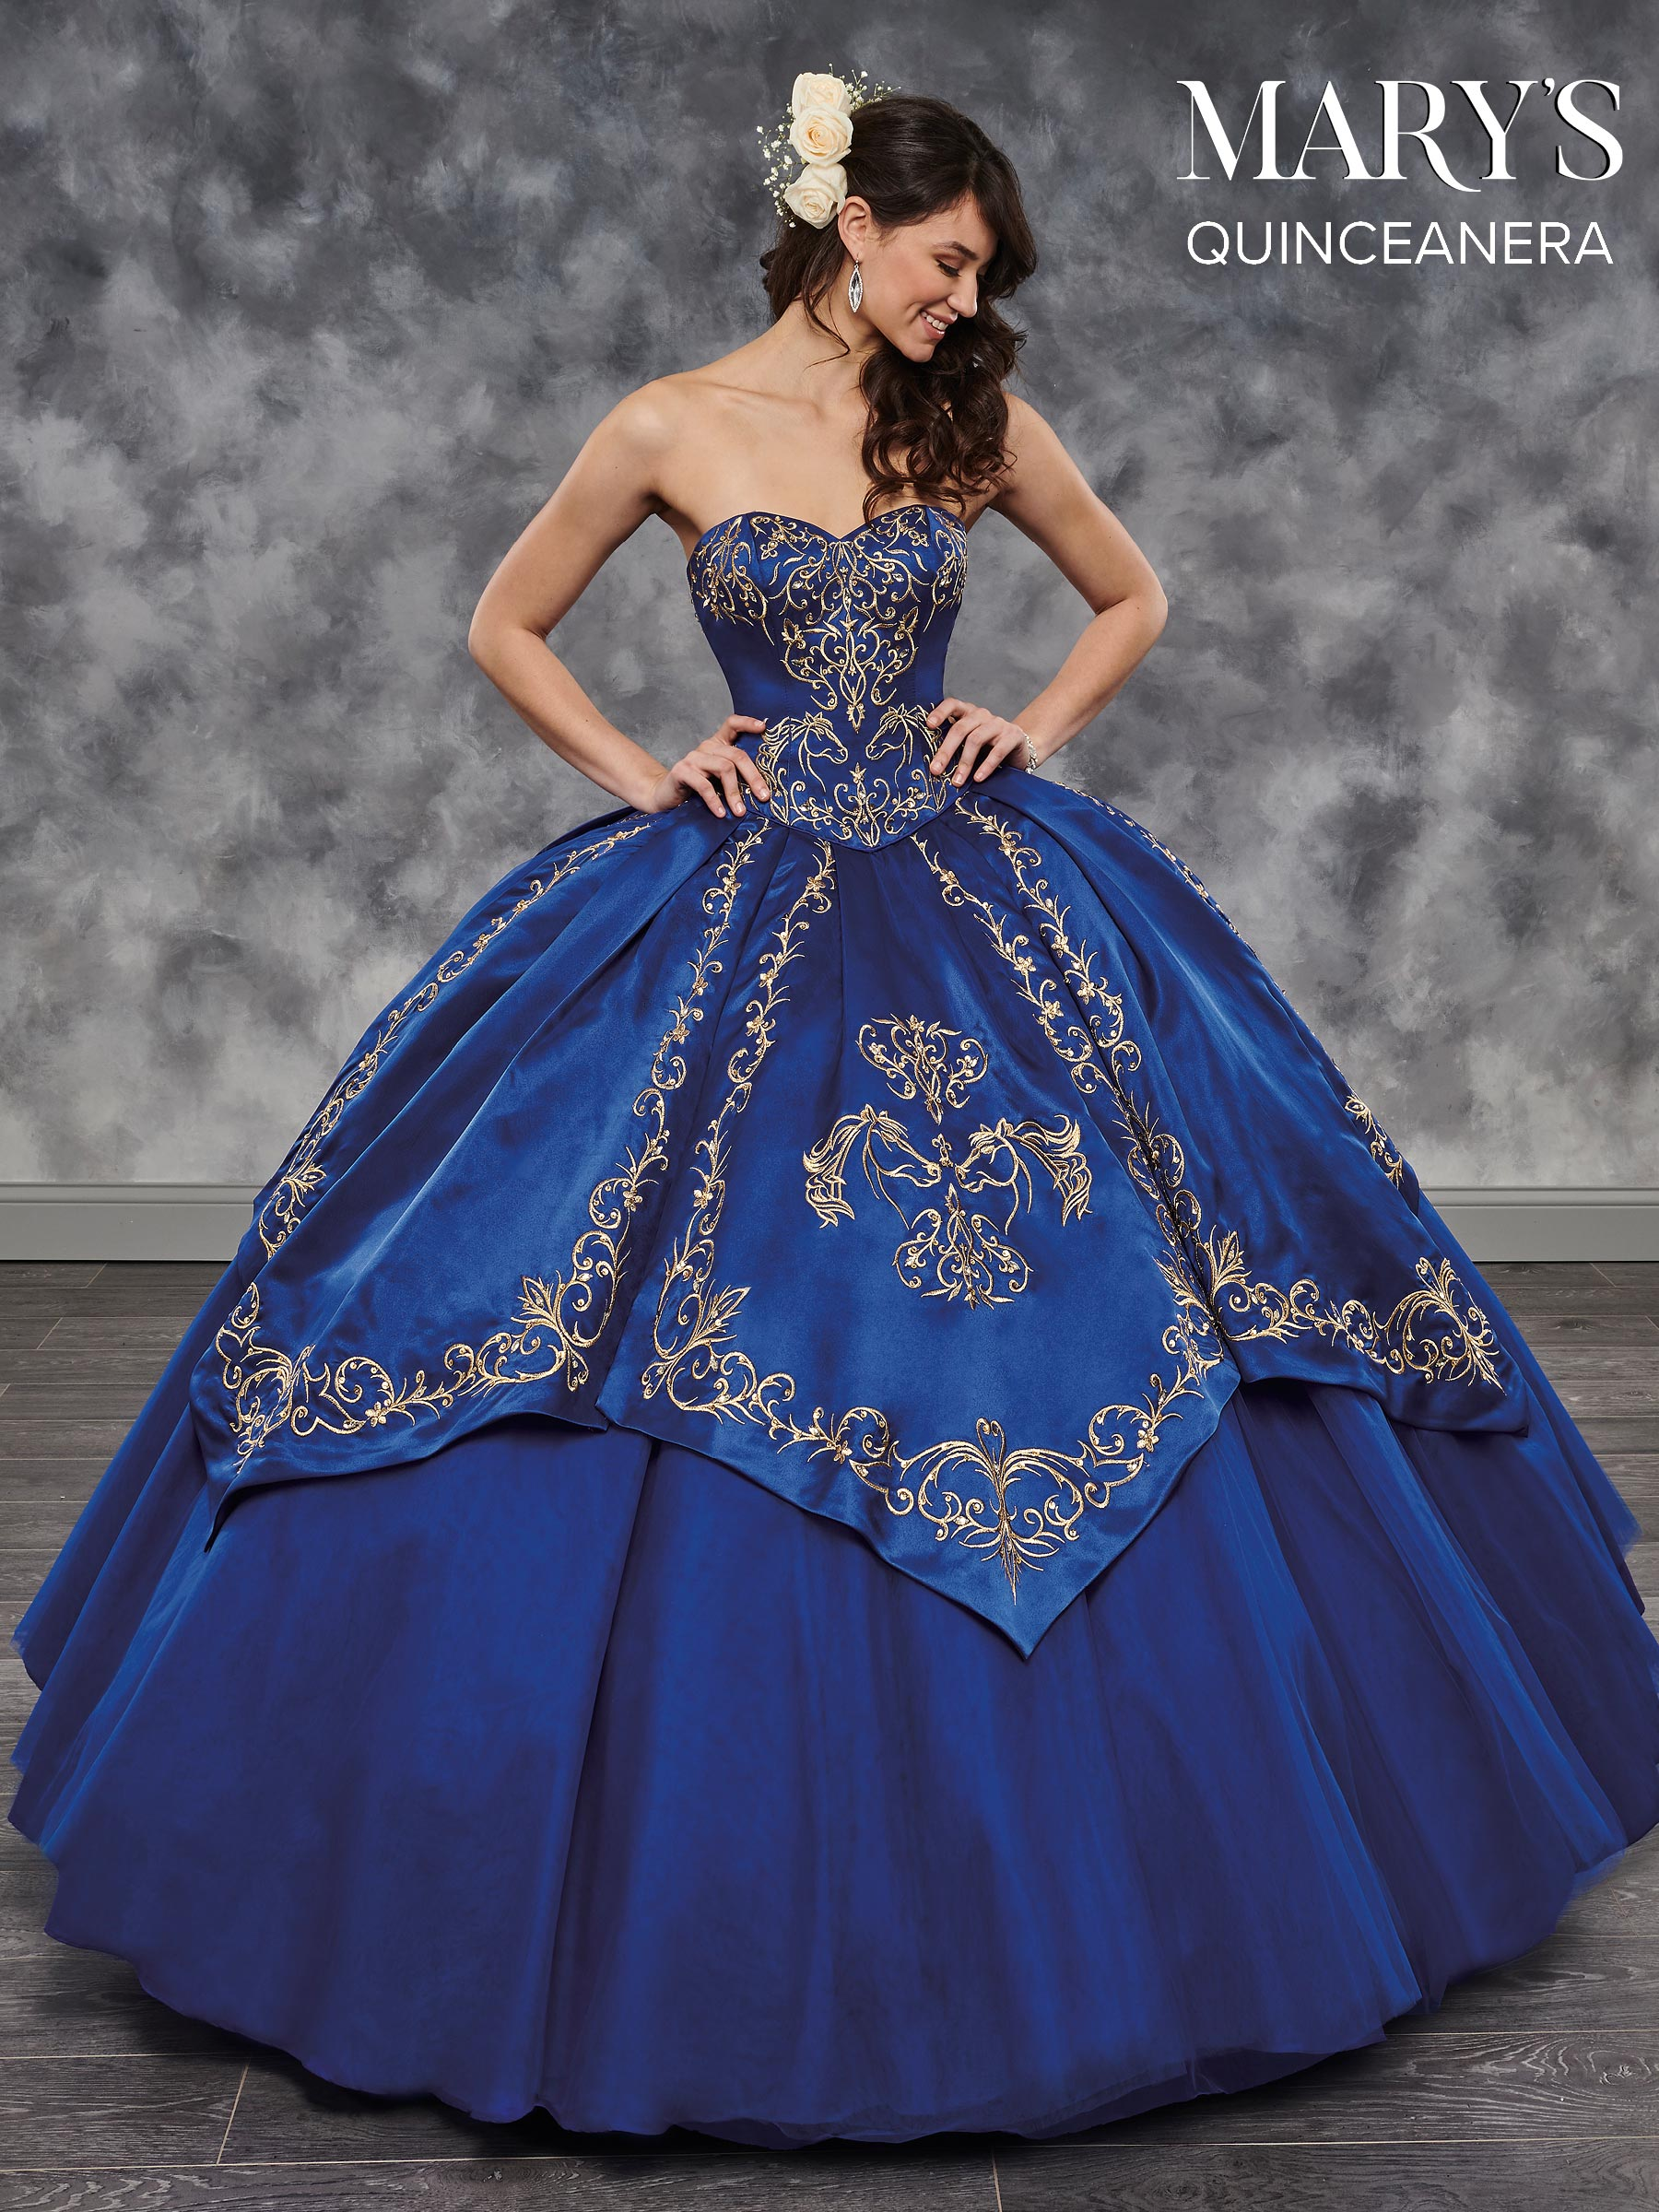 Marys Quinceanera Dresses | Mary's Quinceanera | Style - MQ2044